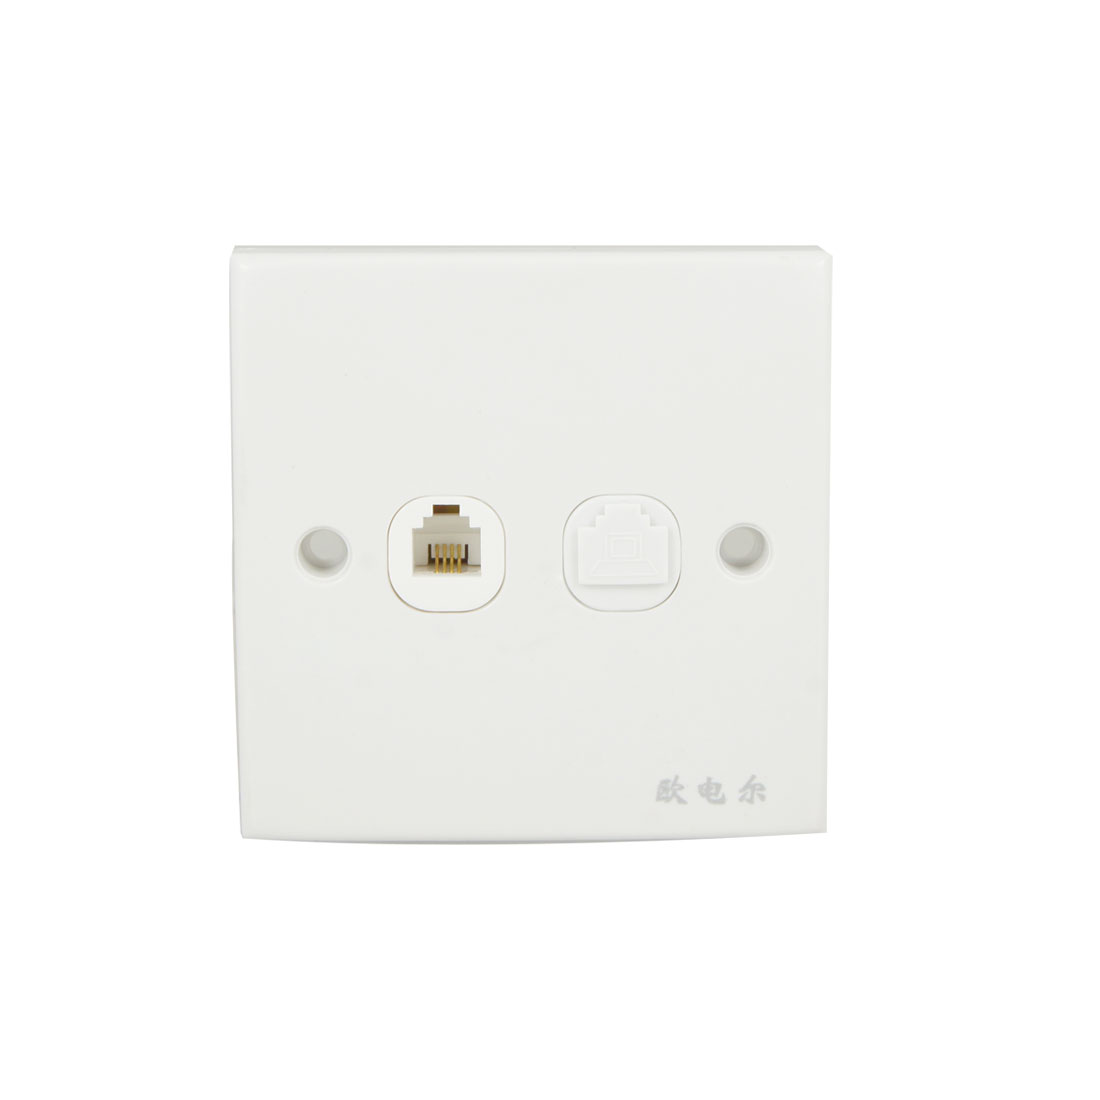 RJ11 Telephone RJ45 Computer Network Socket Wall Outlet Plate White